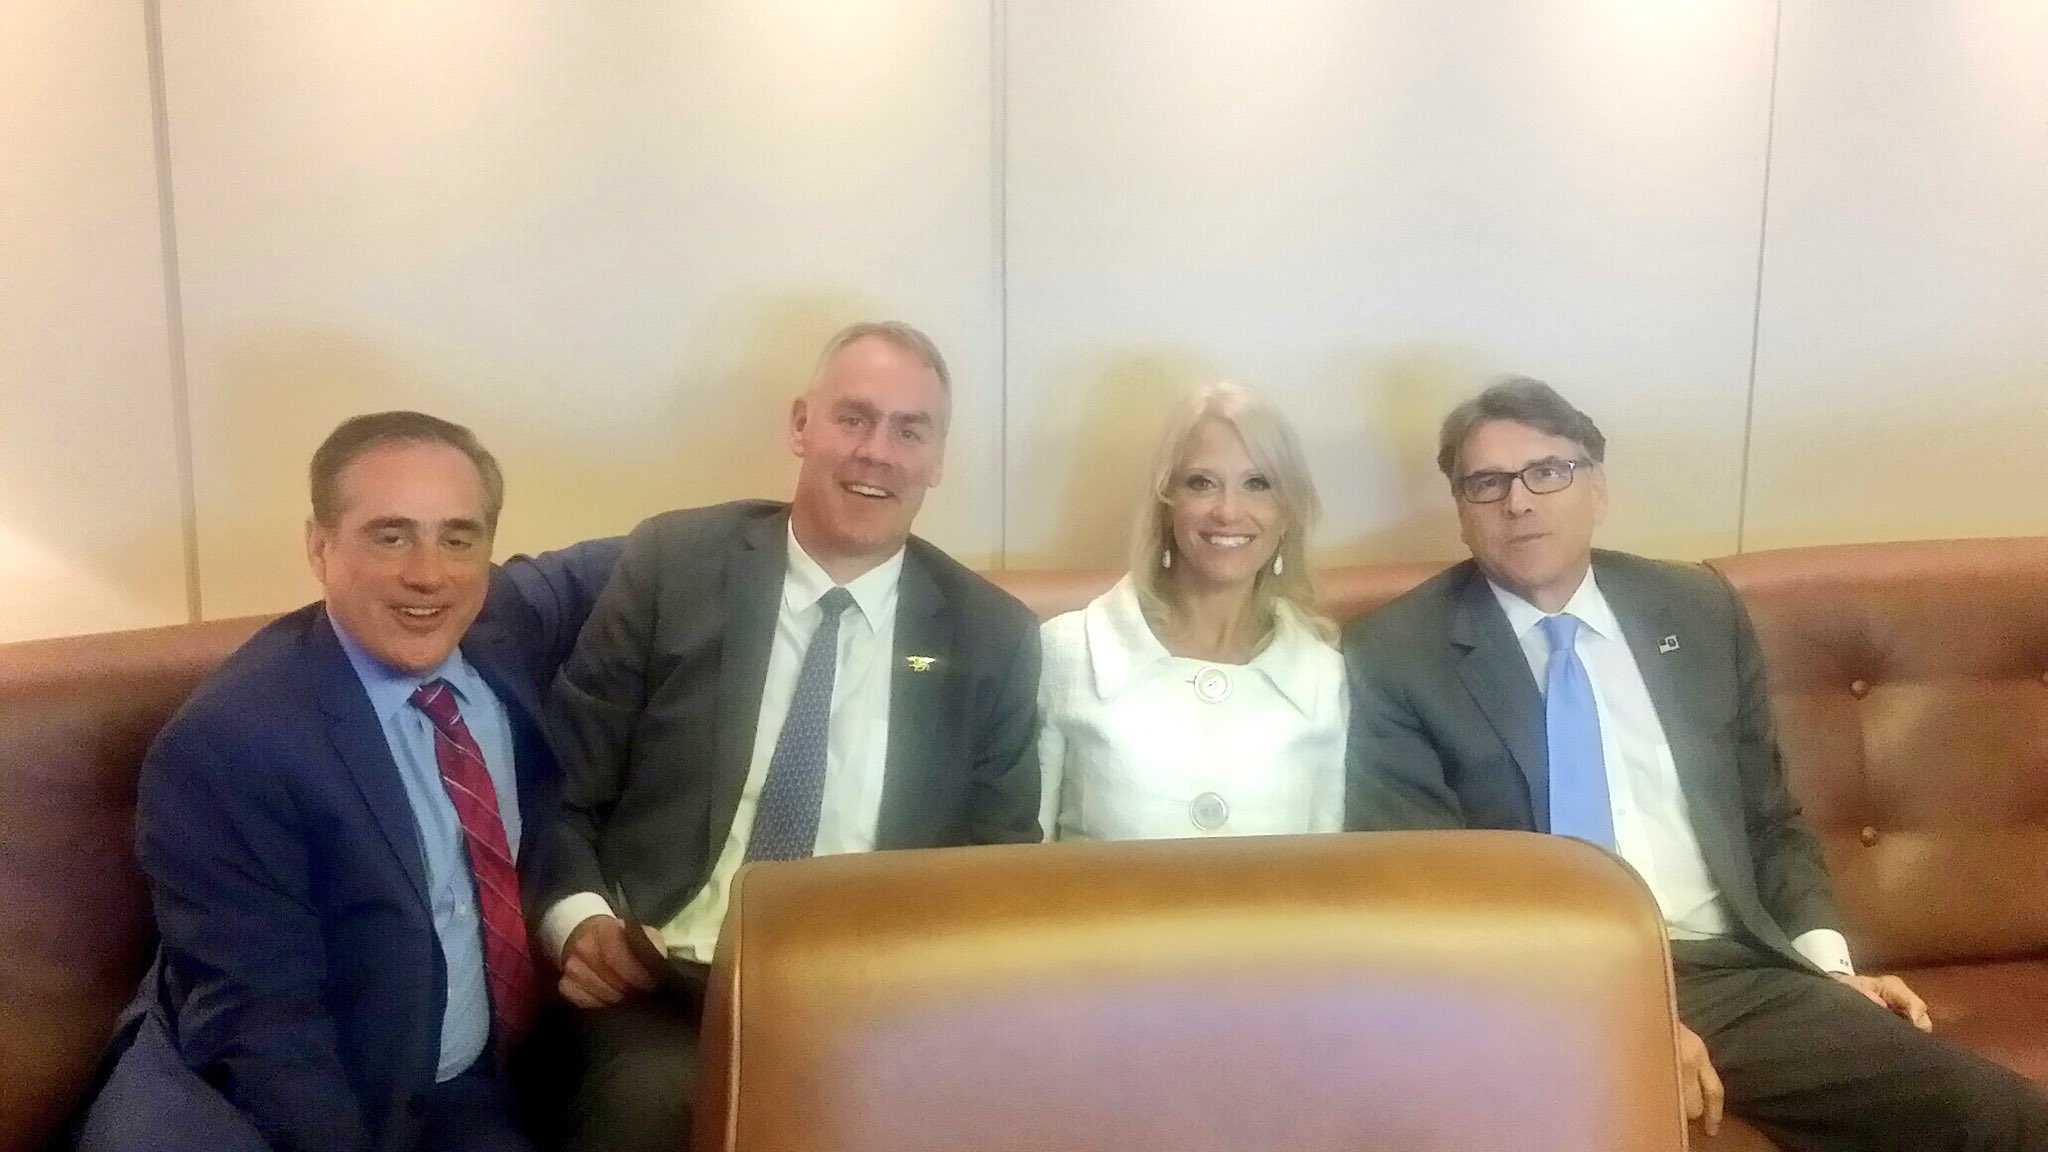 From left: VA Secretary David Shulkin, Interior Secretary Ryan Zinke, White House adviser Kellyanne Conway and Energy Secretary Rick Perry. (Interior Secretary Ryan Zinke via Twitter)